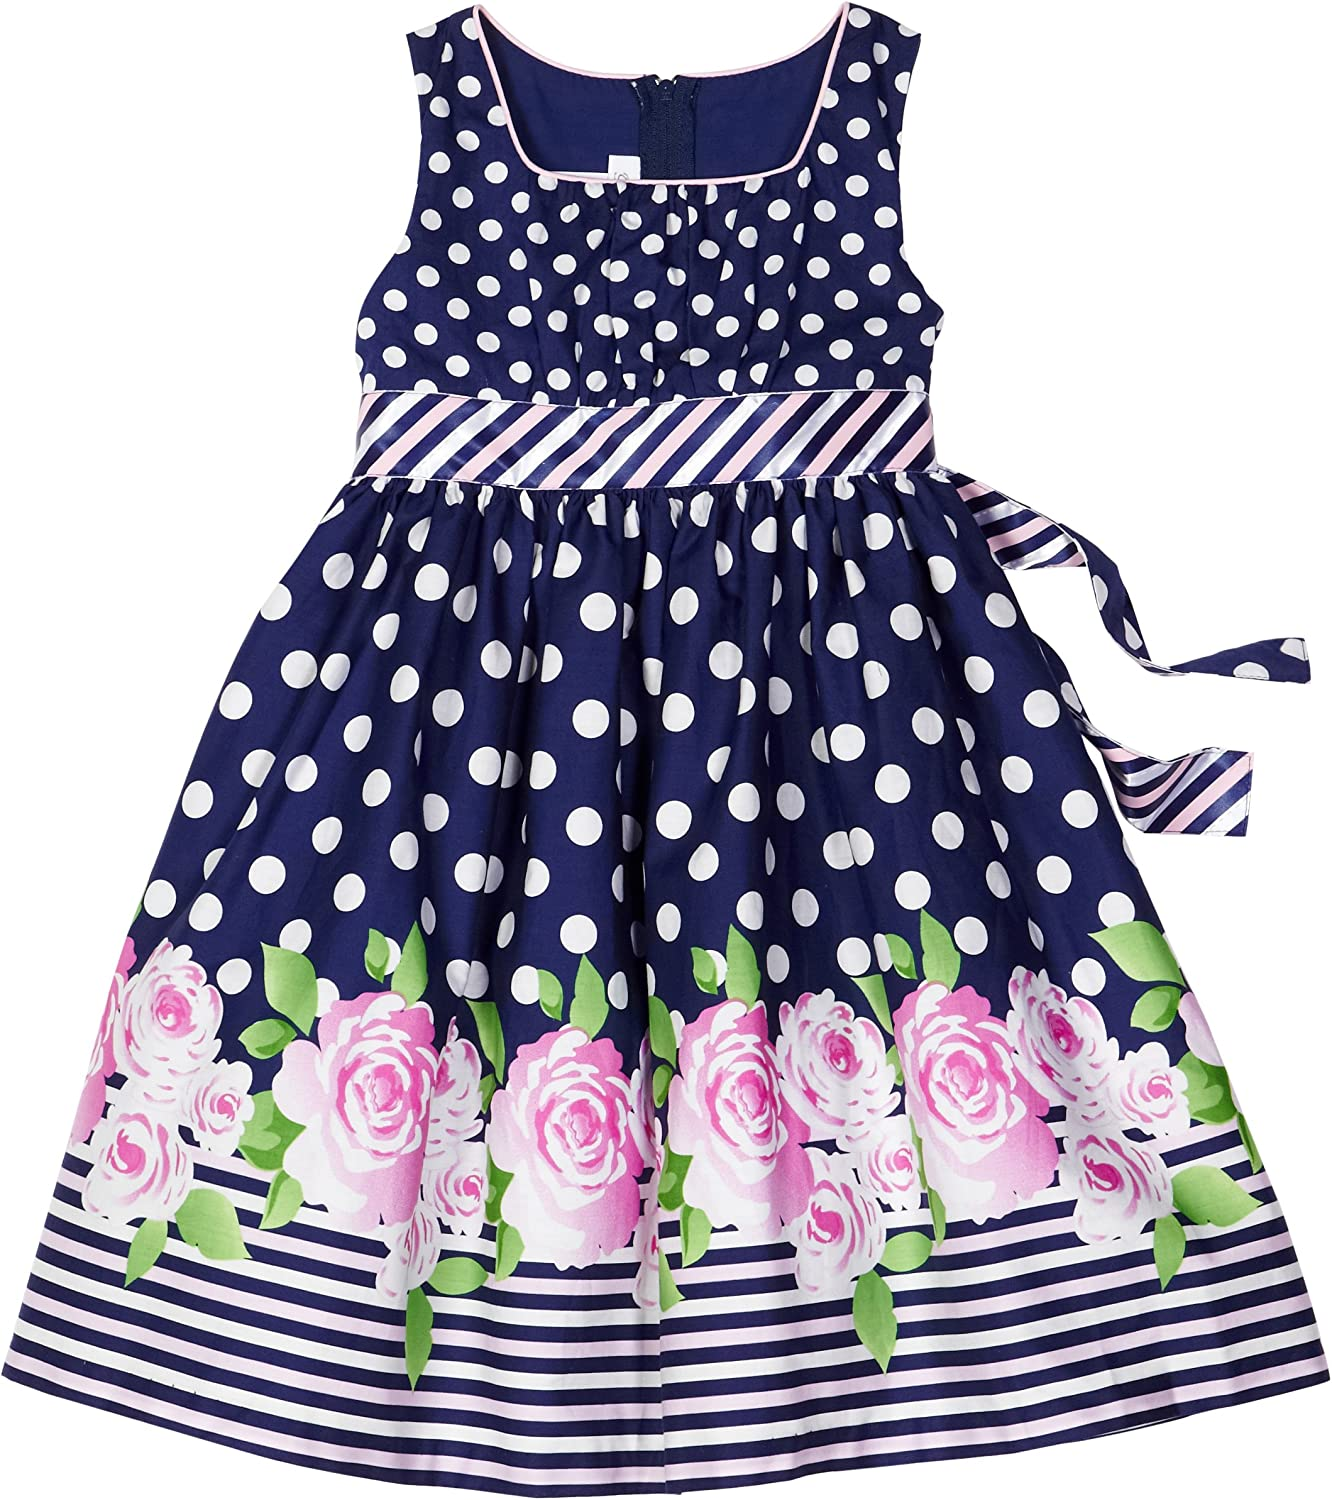 Bonnie Jean Little Girls' Ground Print Dress with Roses Border